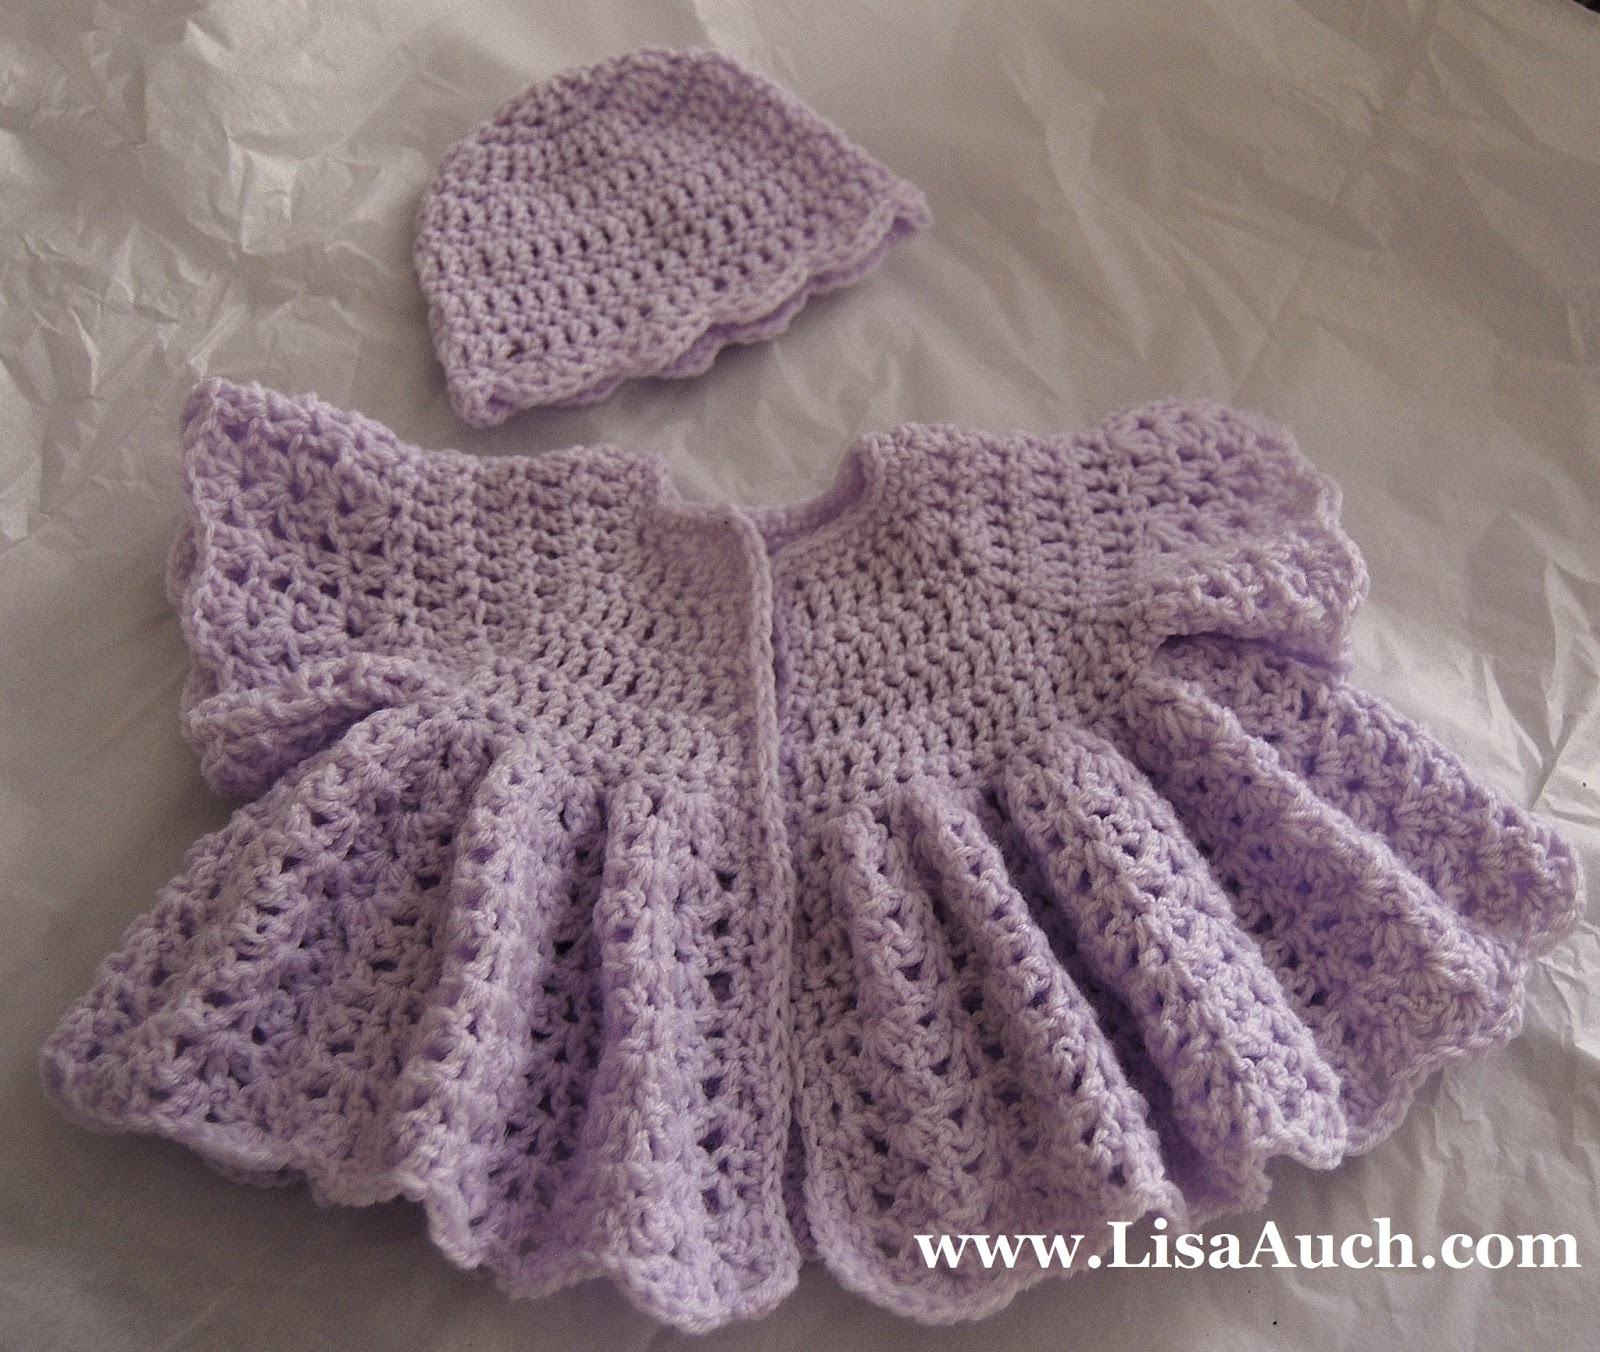 Free Crochet Jacket Patterns For Babies : Free Crochet Sweater Patterns for Babies